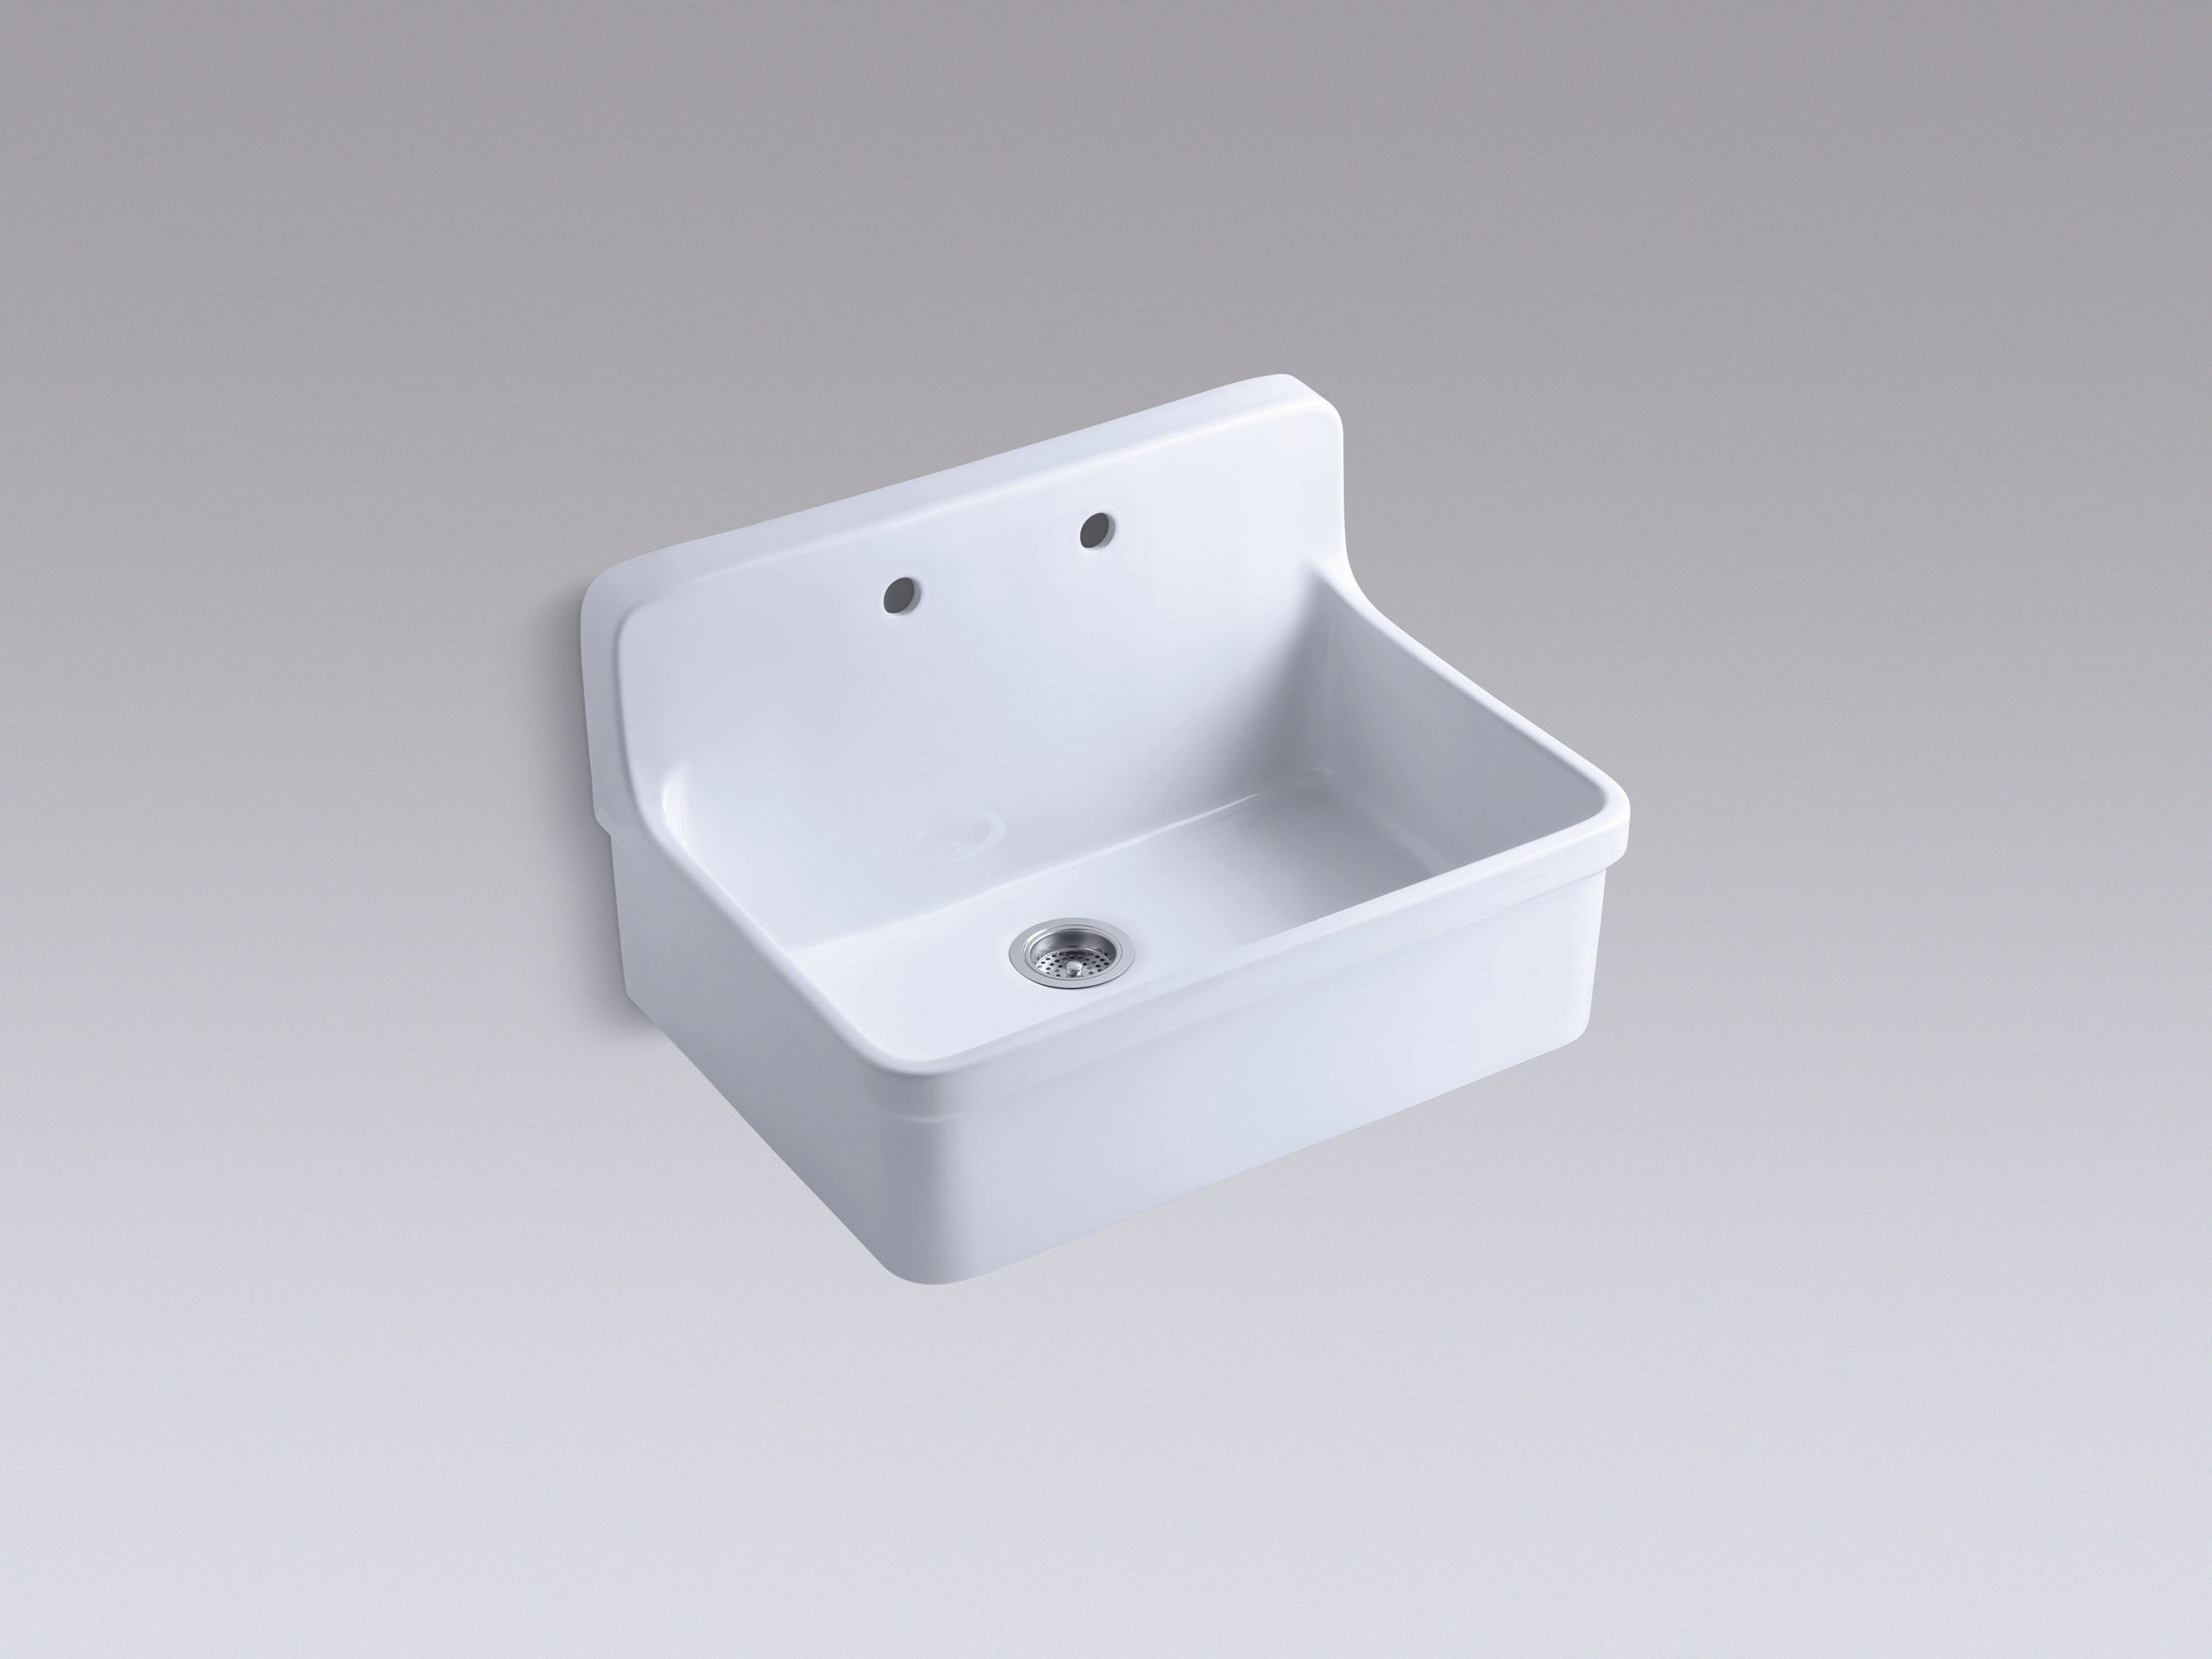 The Plumber Old Kitchen Sink May Be Out Of Repair Options